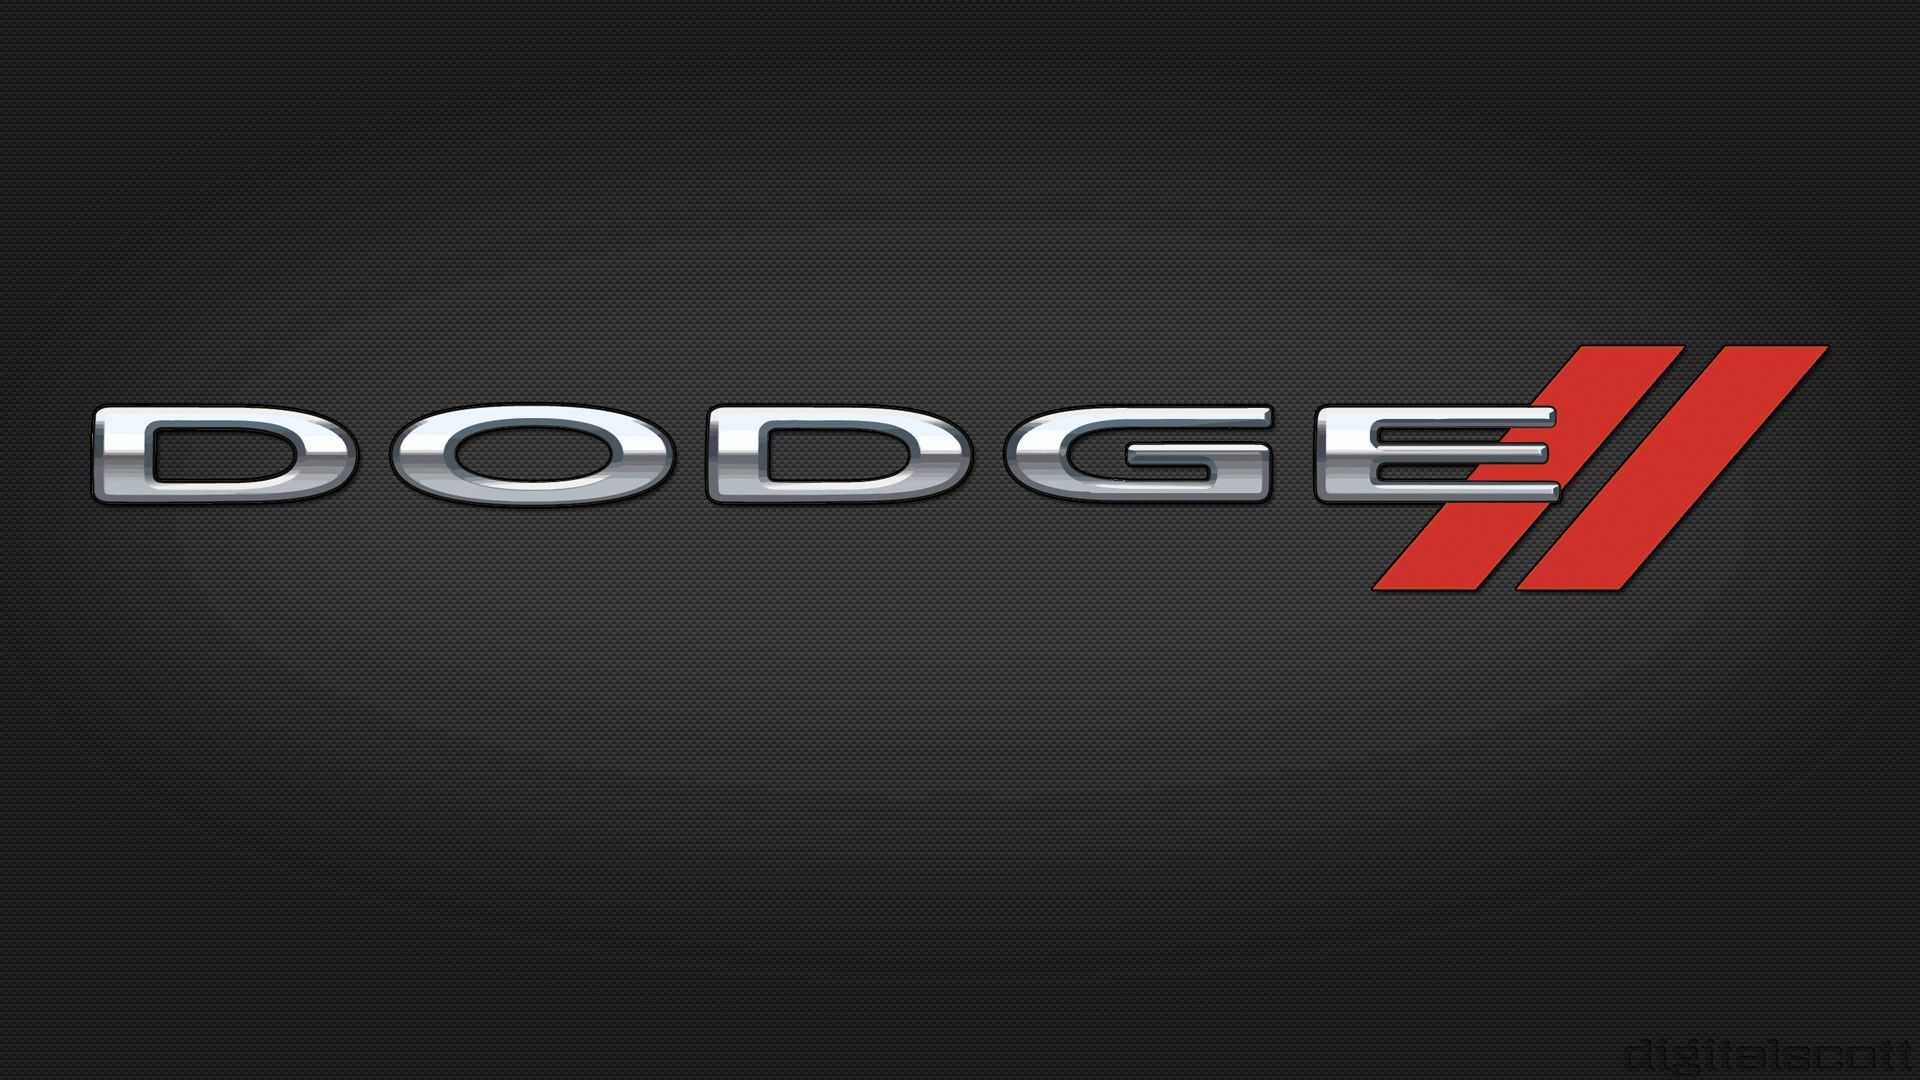 Dodge Logo Wallpapers Top Free Dodge Logo Backgrounds Wallpaperaccess